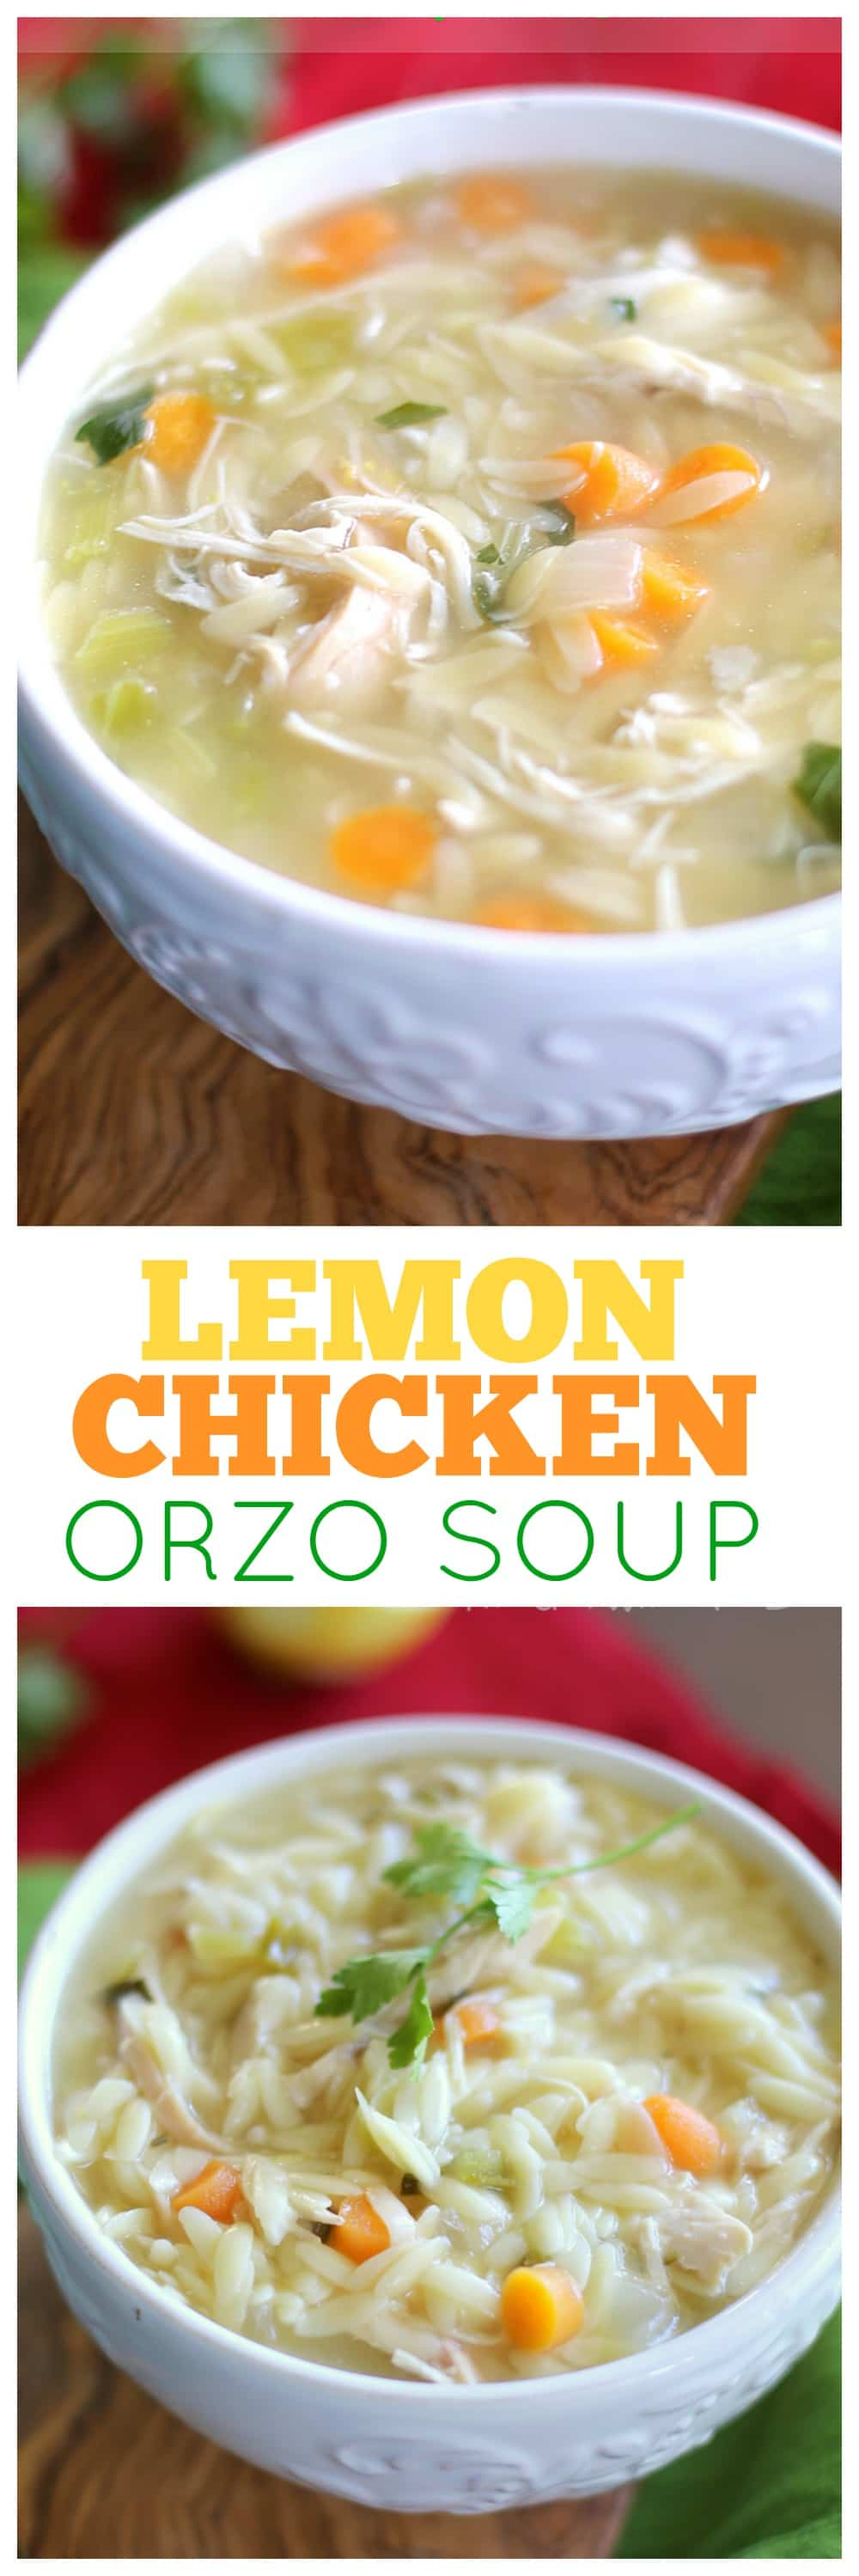 This Lemon Chicken Orzo Soup is a comforting and easy meal for any night of the week. #healthy #lemon #chicken #orzo #soup #recipe